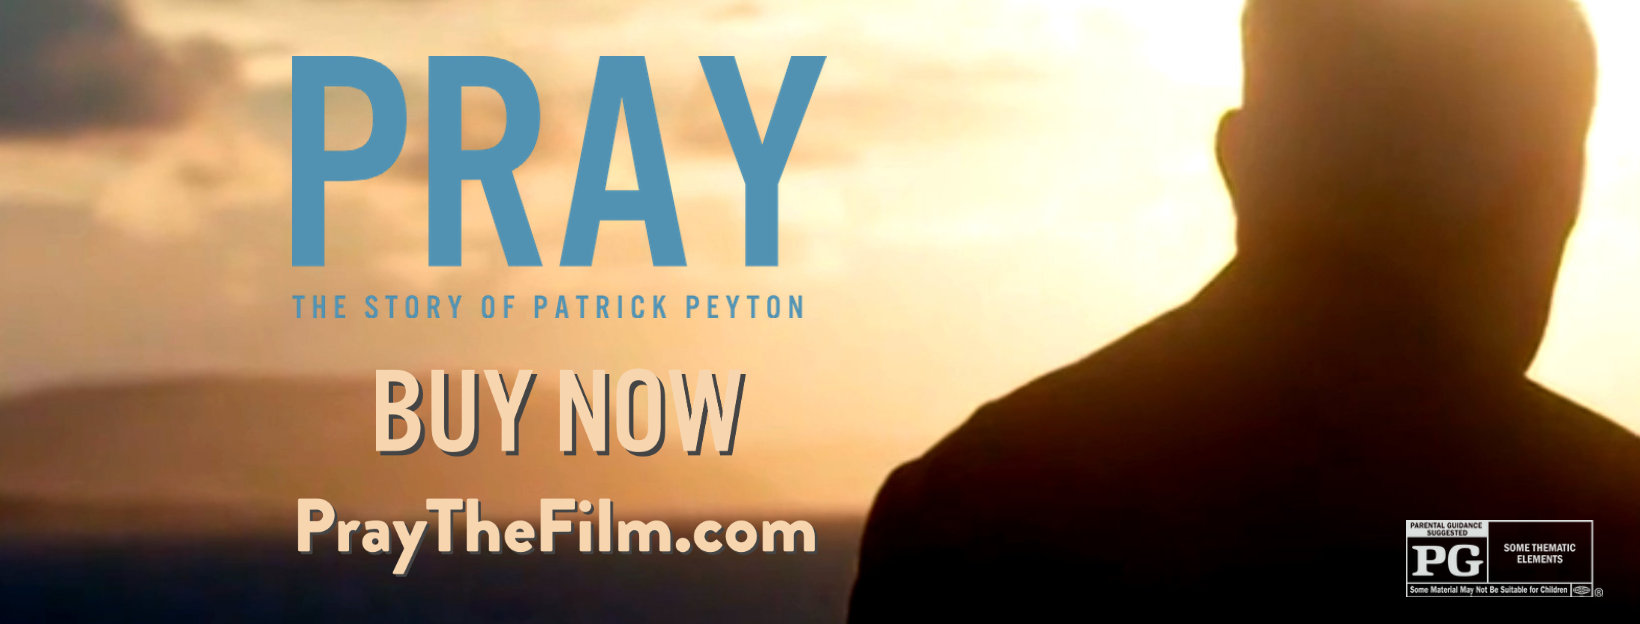 PRAY-FB-COVER